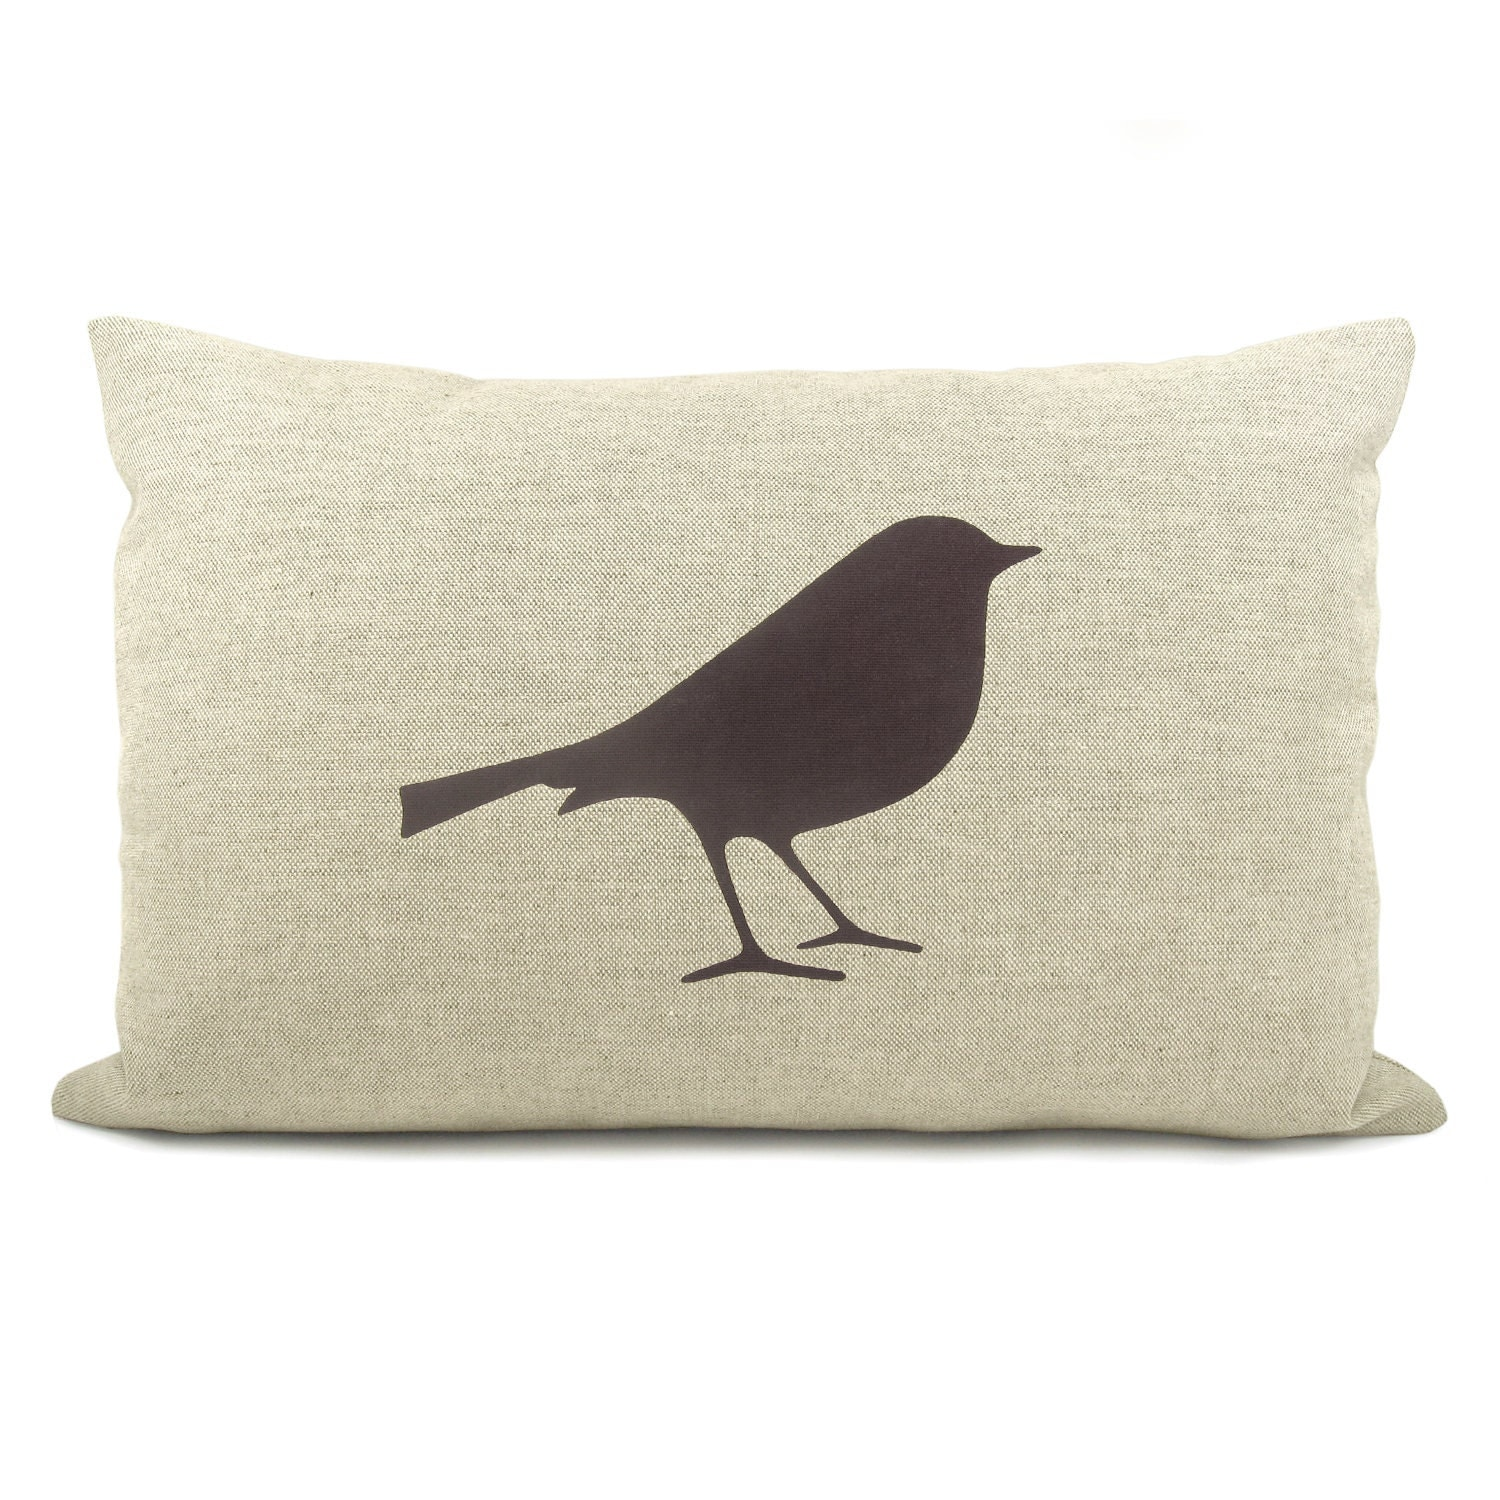 Bird throw pillow cover - Dark brown bird print on natural canvas front and houndstooth print back lumbar pillow - 12x18 accent pillow cover - ClassicByNature